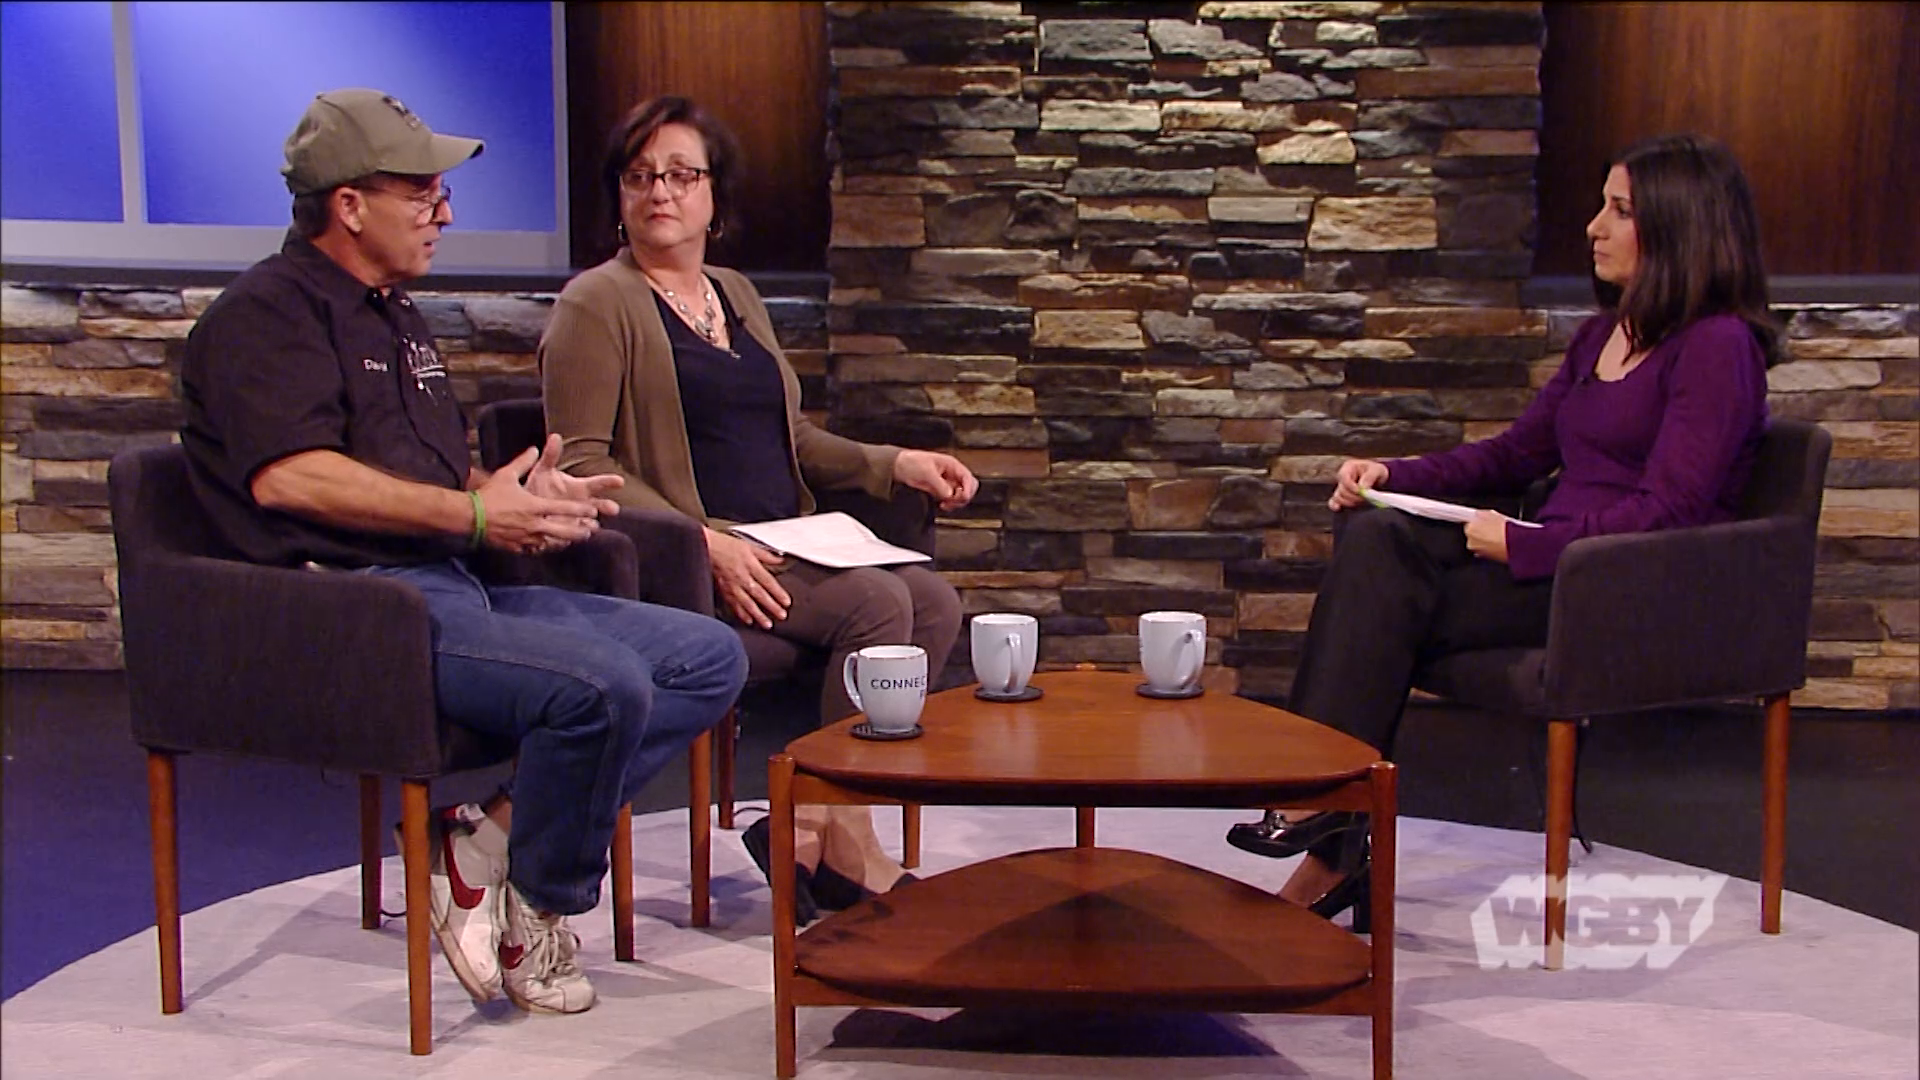 One Call Away Foundation's David Sutton & RN Ida Konderwicz share details about Baystate Medical Center's veteran mental health forum for first responders.